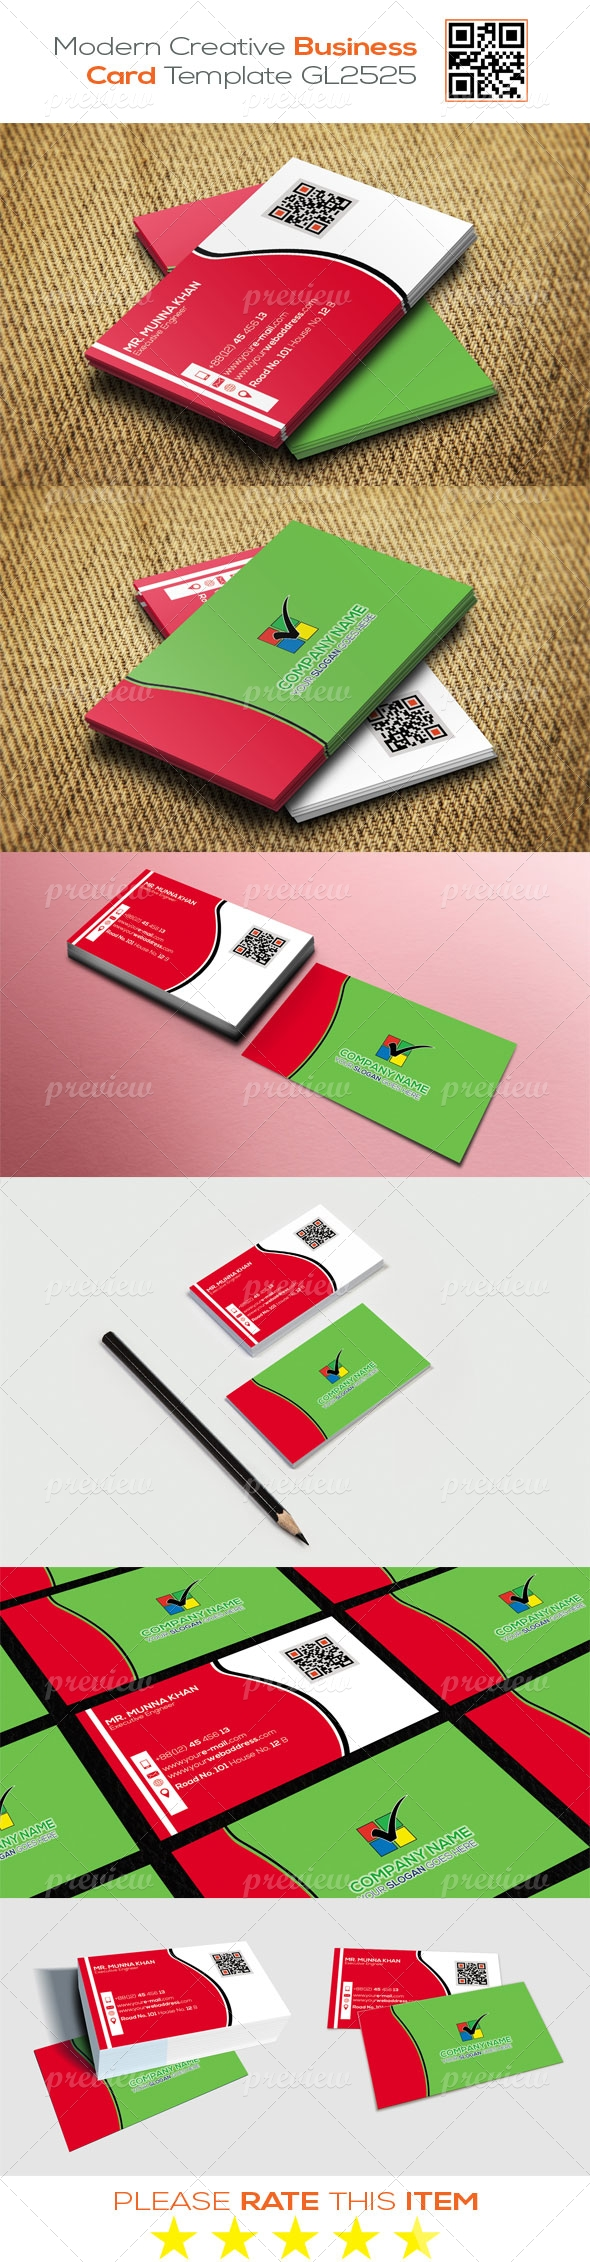 Modern Creative Business Card Template GL2525